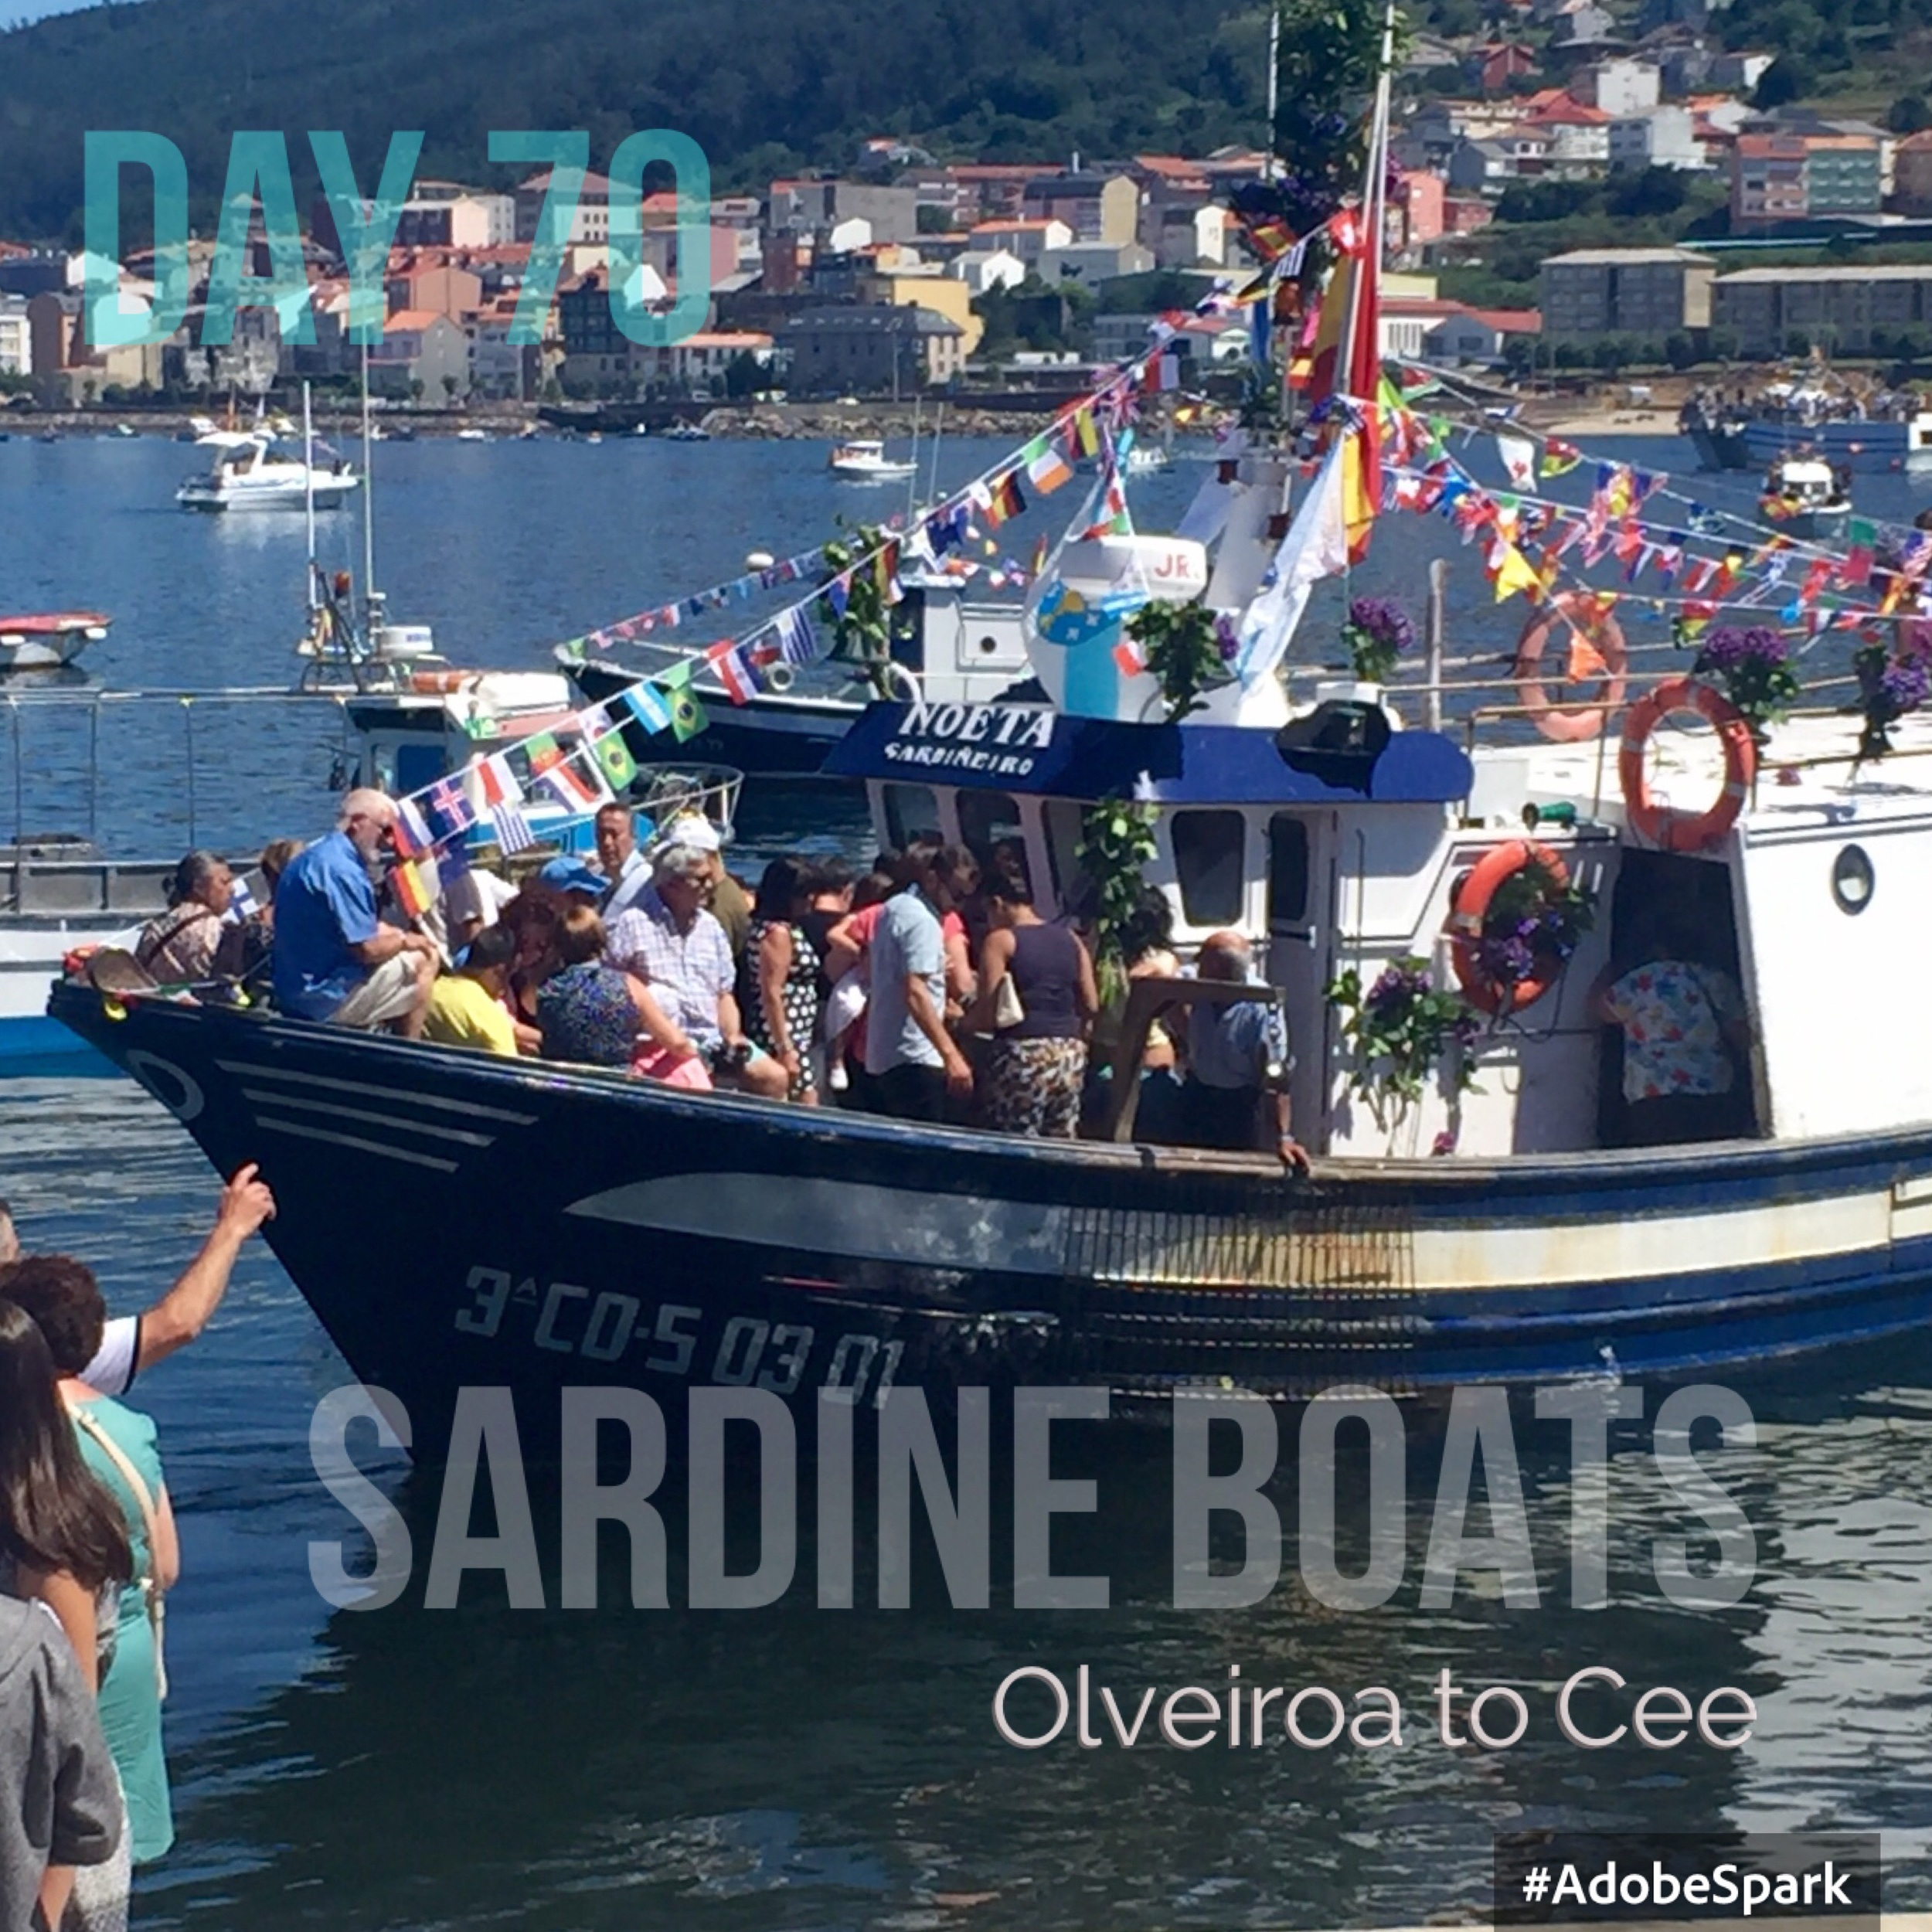 Fiesta to bless the sardine boats